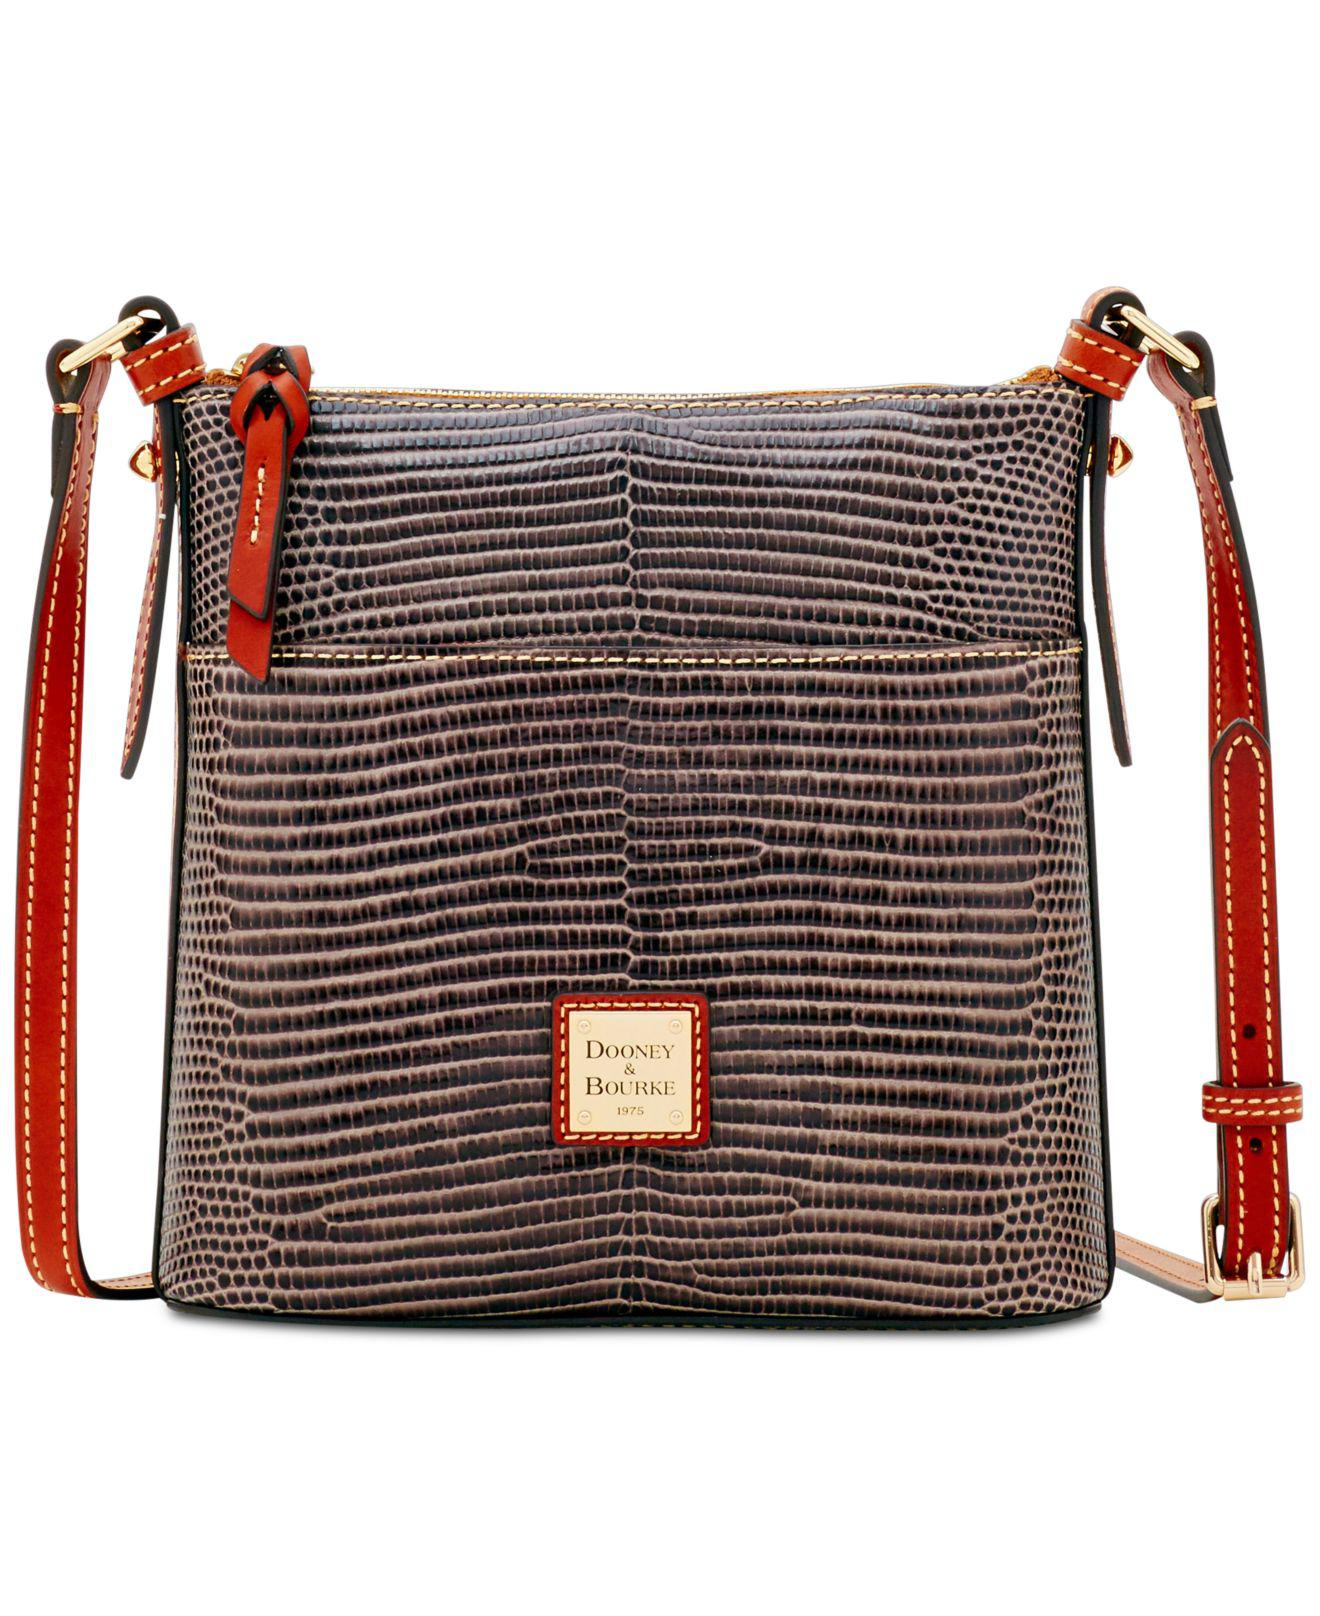 Dooney Bourke Women S Gray Lizard Embossed Leather Small Crossbody